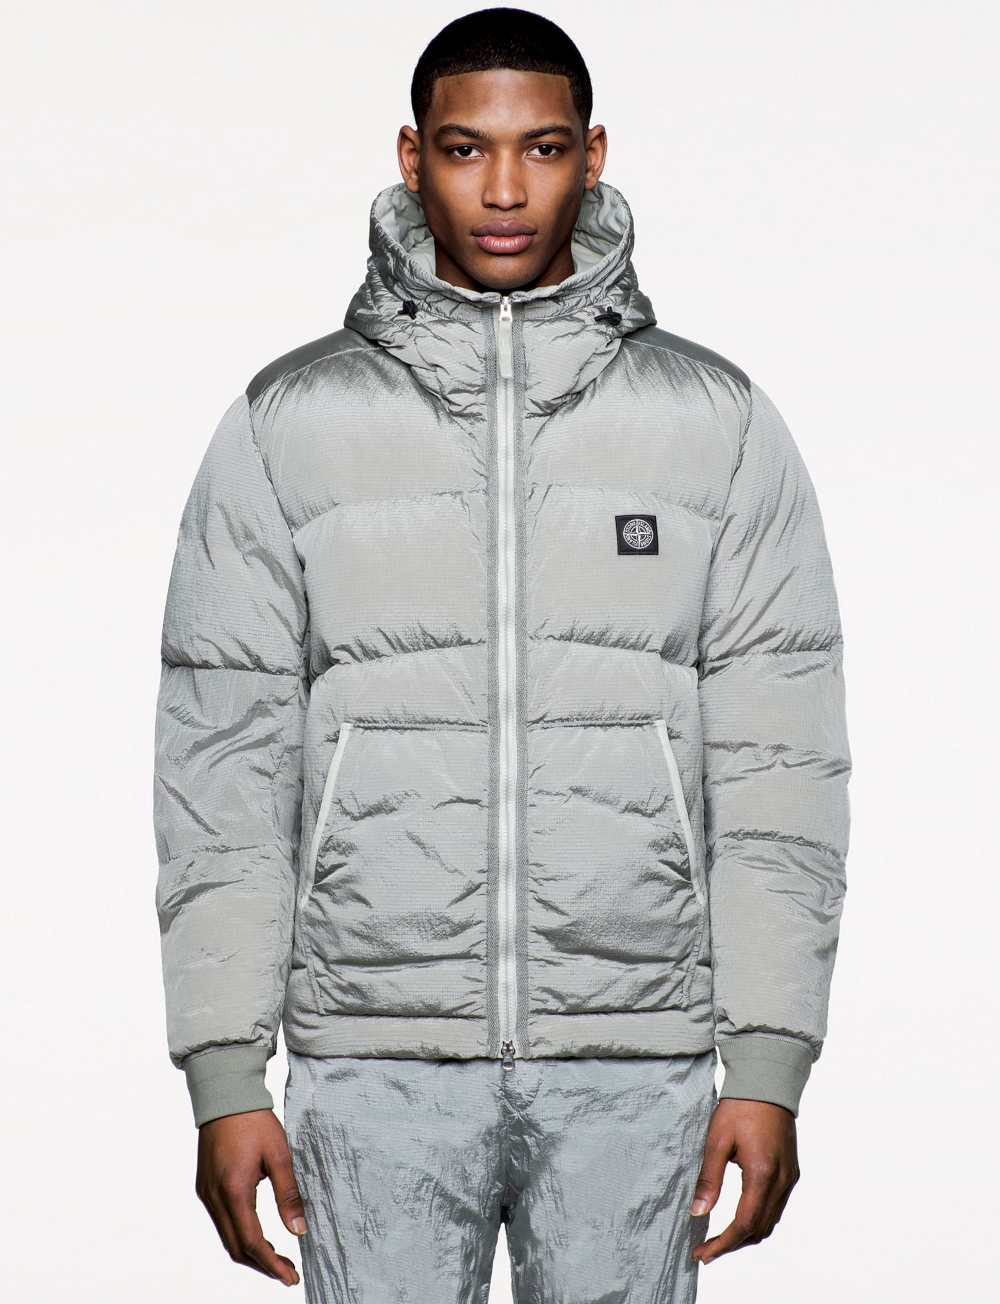 Stone Island Set Pace And Cover All Bases For A Heavy Hitting Aw19 Stone Island Mens Jackets Silver Puffer Jacket [ 1304 x 1000 Pixel ]